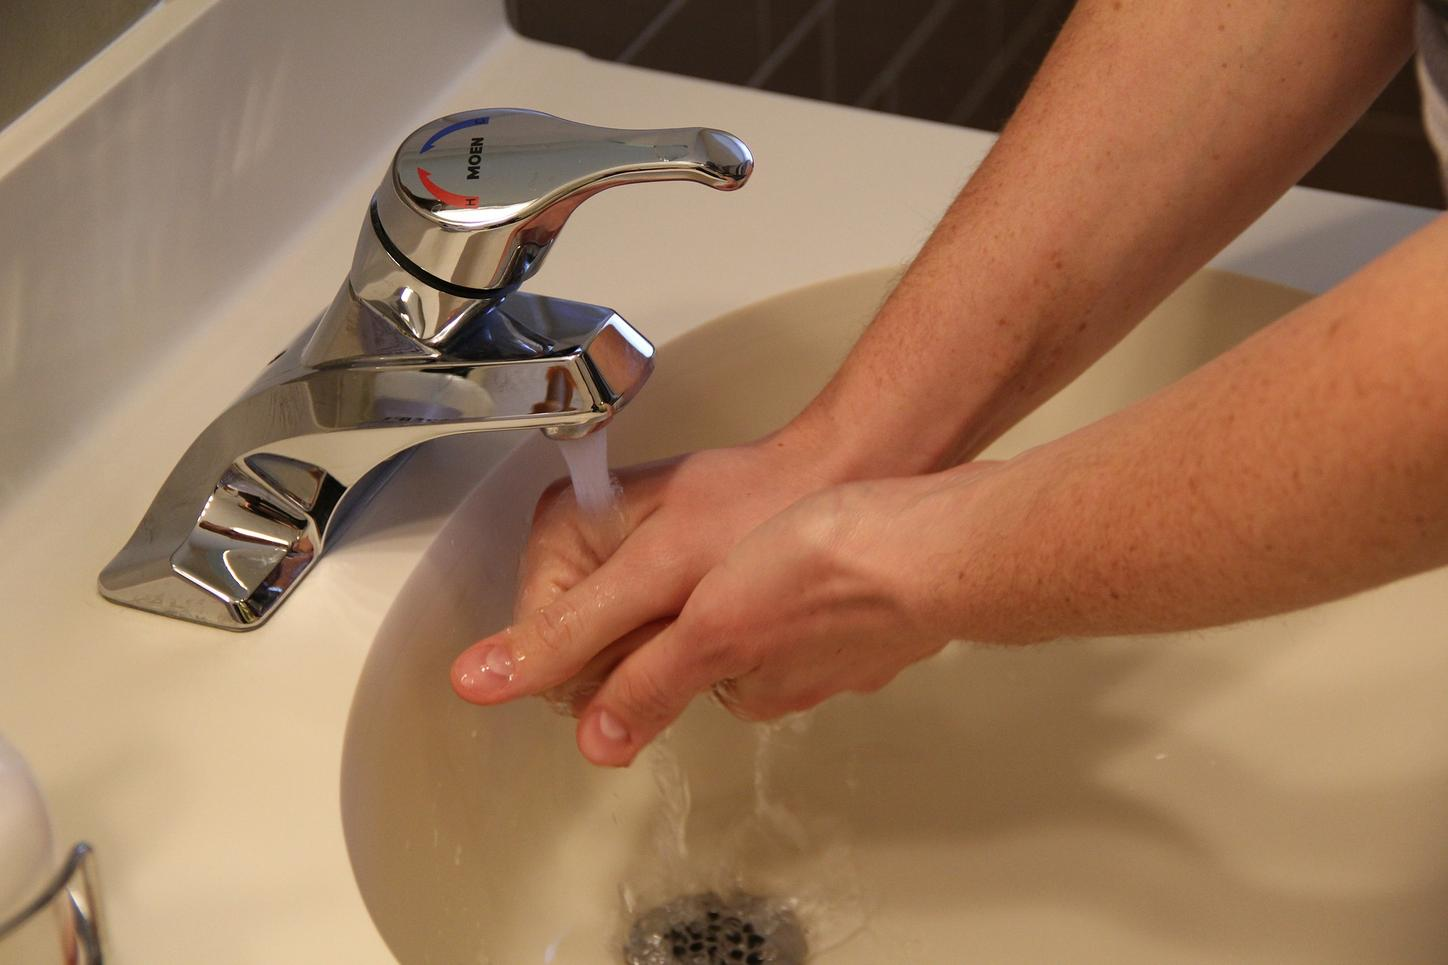 What to do if you have no hot water